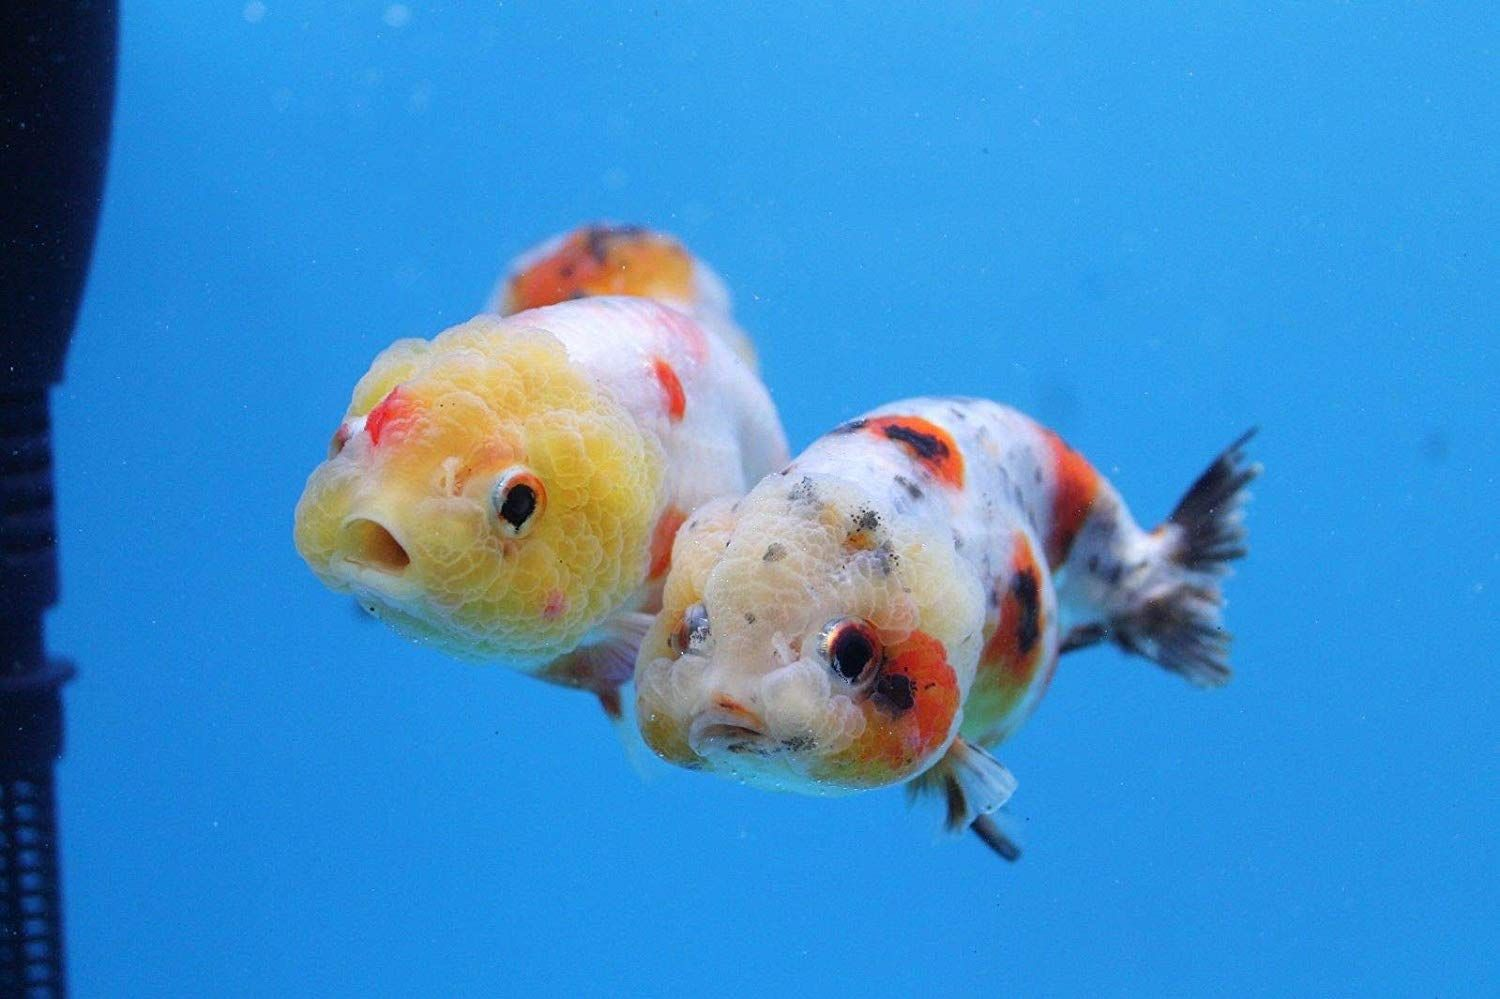 Assorted 4 Calico Ranchu Goldfish For Sale Free Shipping Goldfish For Sale Goldfish Goldfish Species